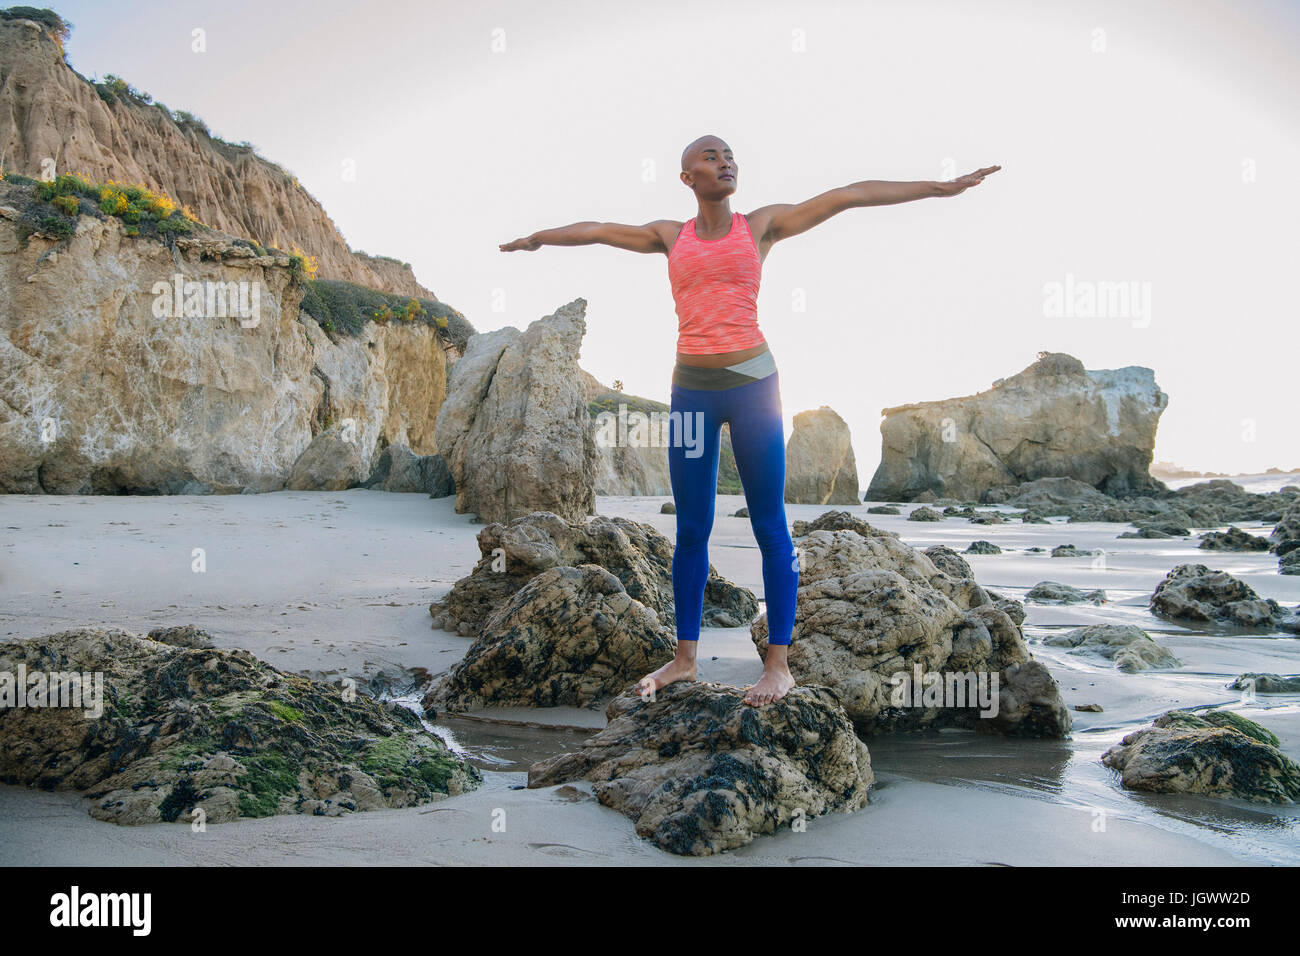 Young woman standing on rocks on beach, arms outstretched - Stock Image